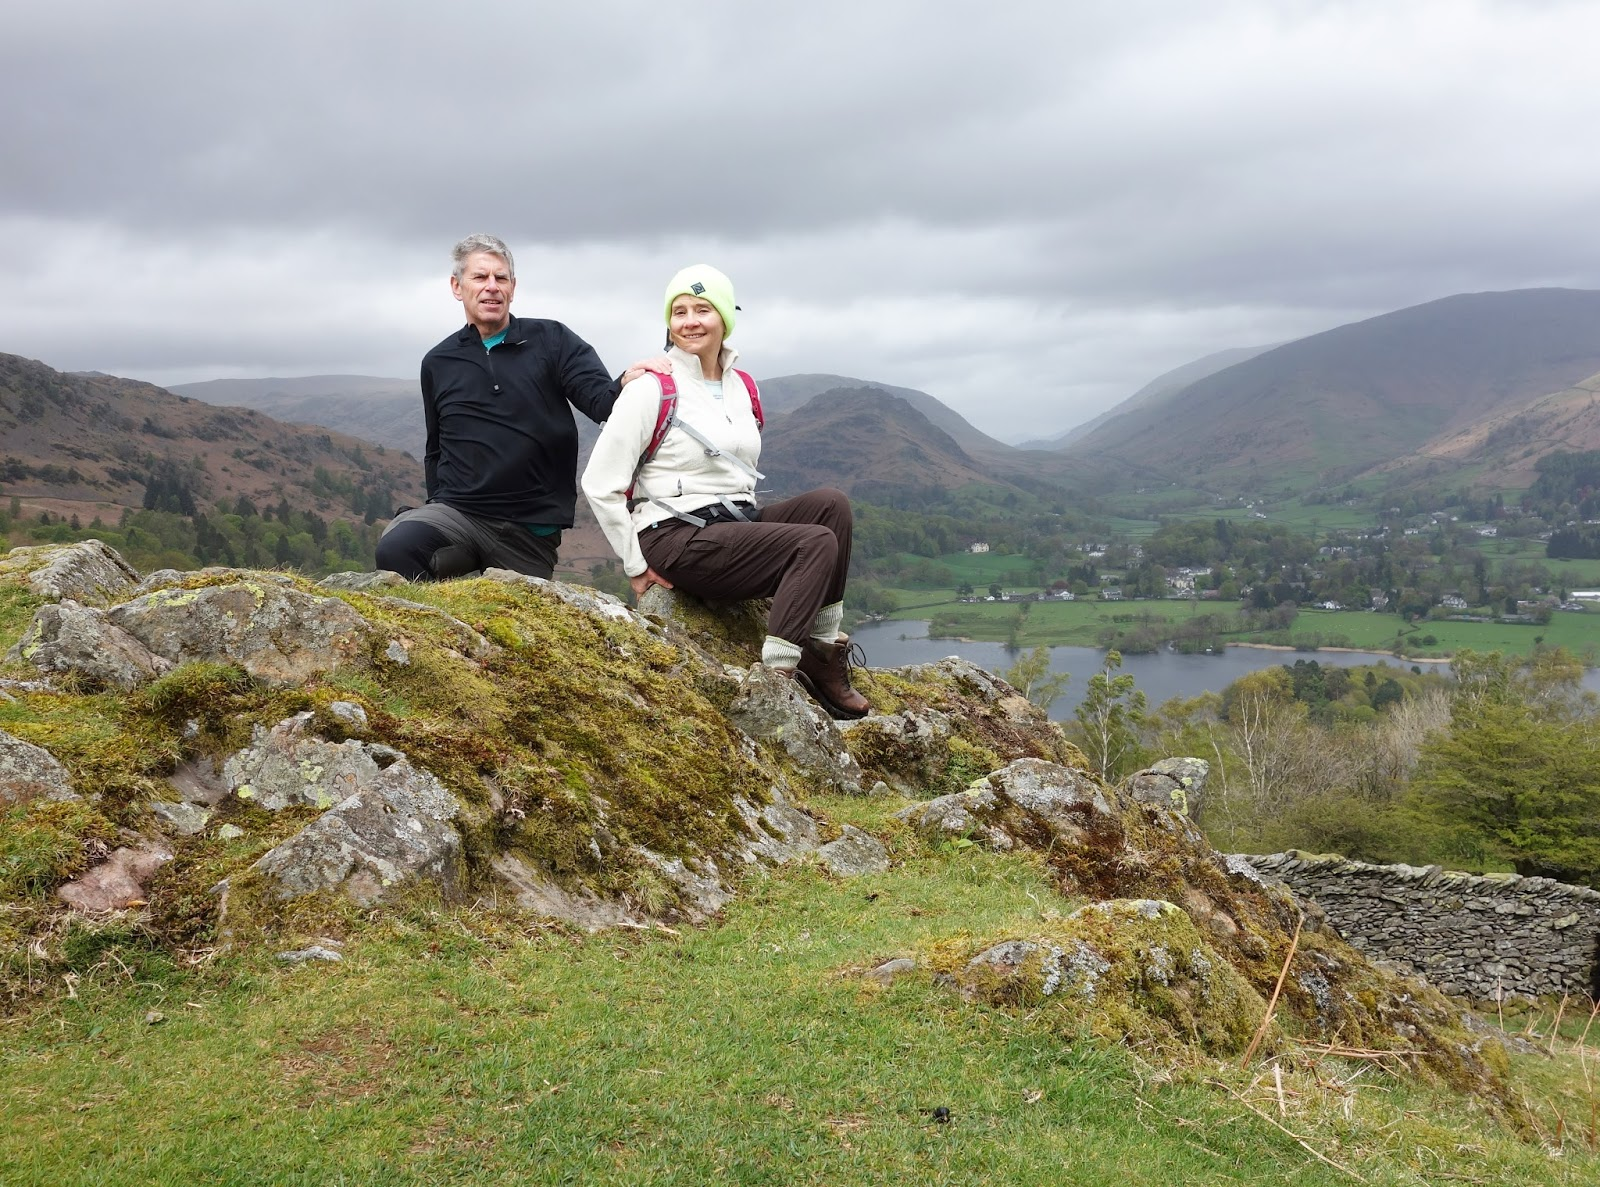 Blogger Gail Hanlon from Is This Mutton? and husband John on a hike in the Lake District